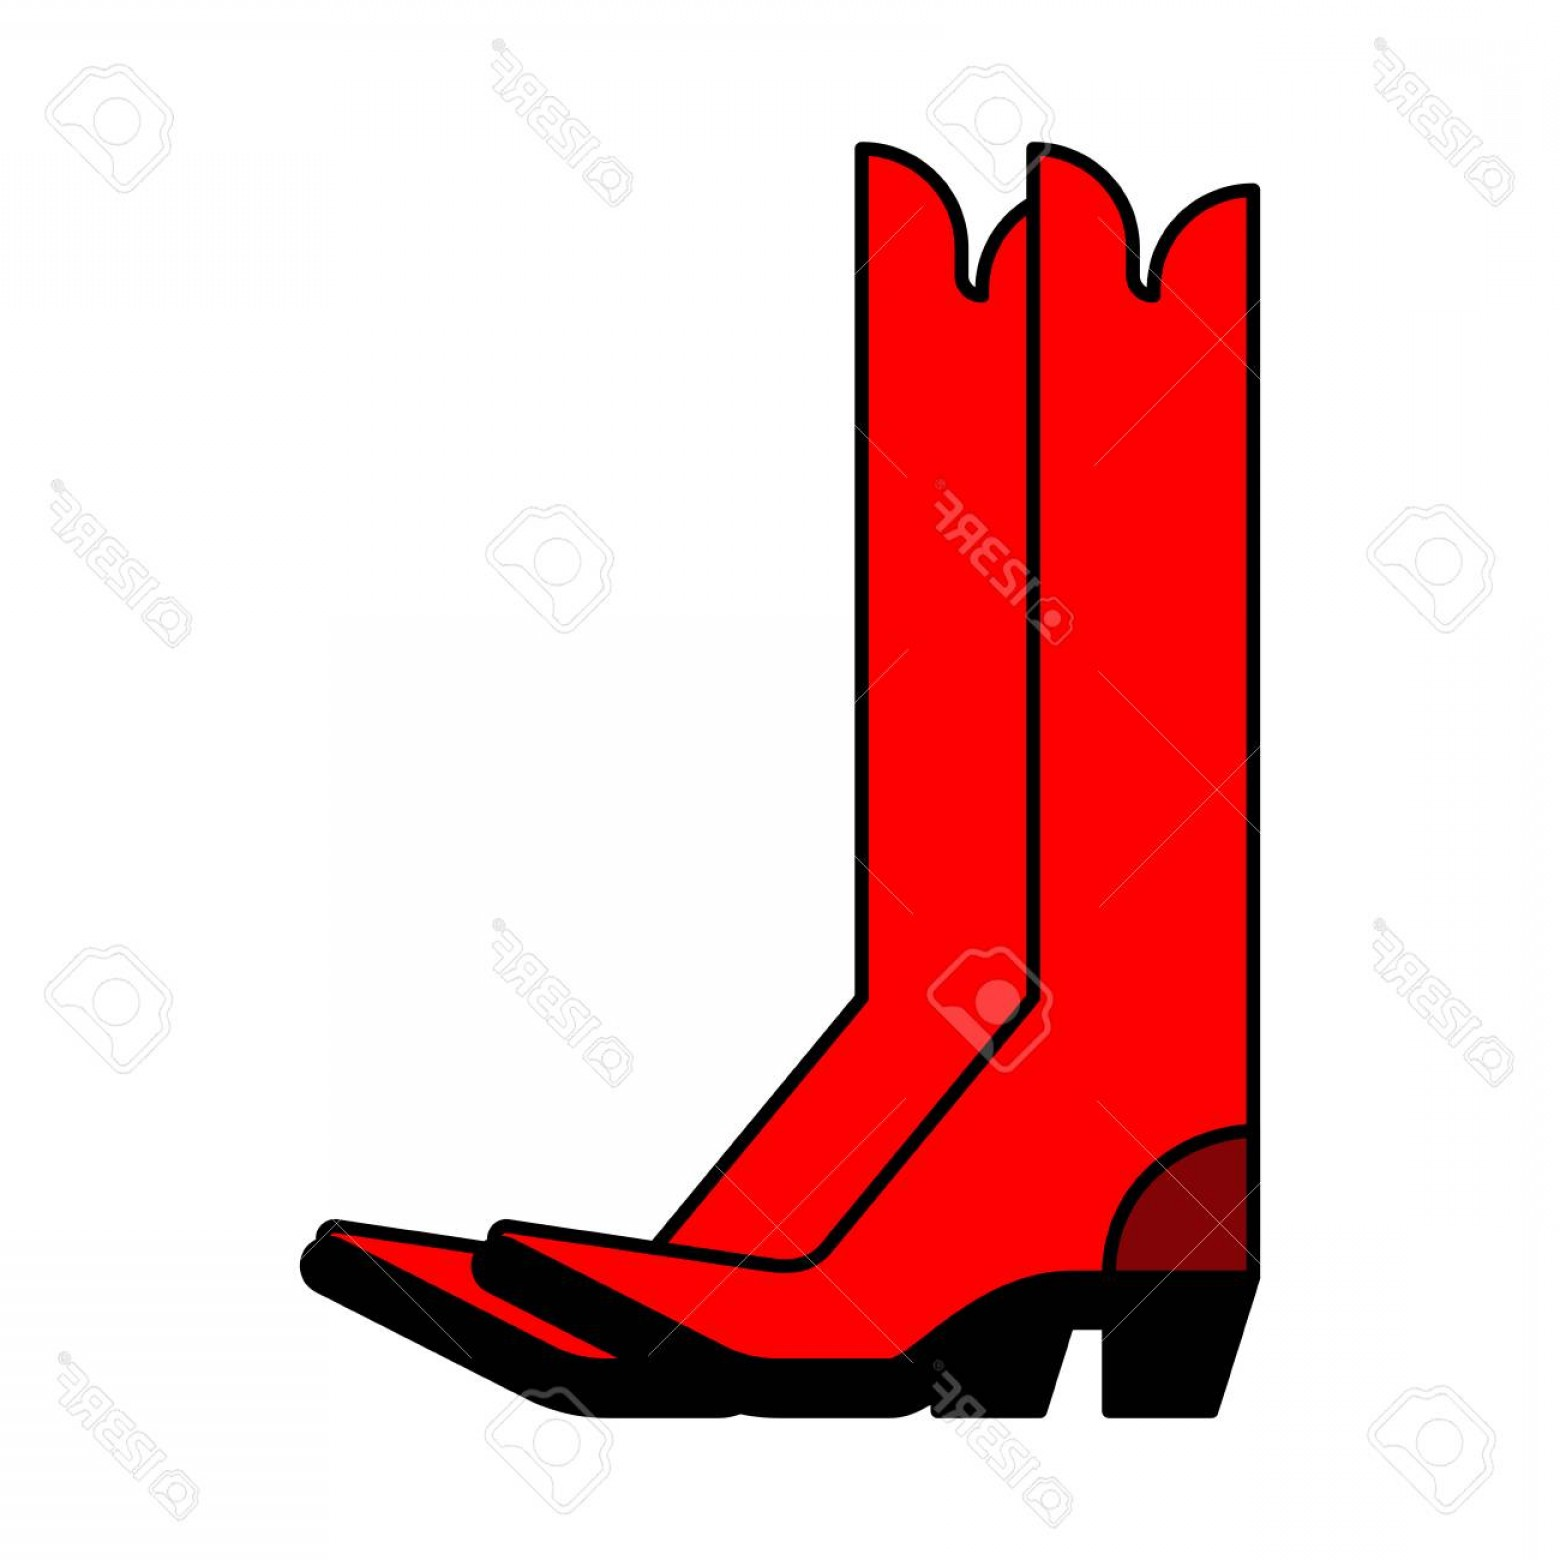 Two Cowgirl Boots Vector: Photostock Vector Red Cowboy Boots Country Style Shoes Vector Illustration